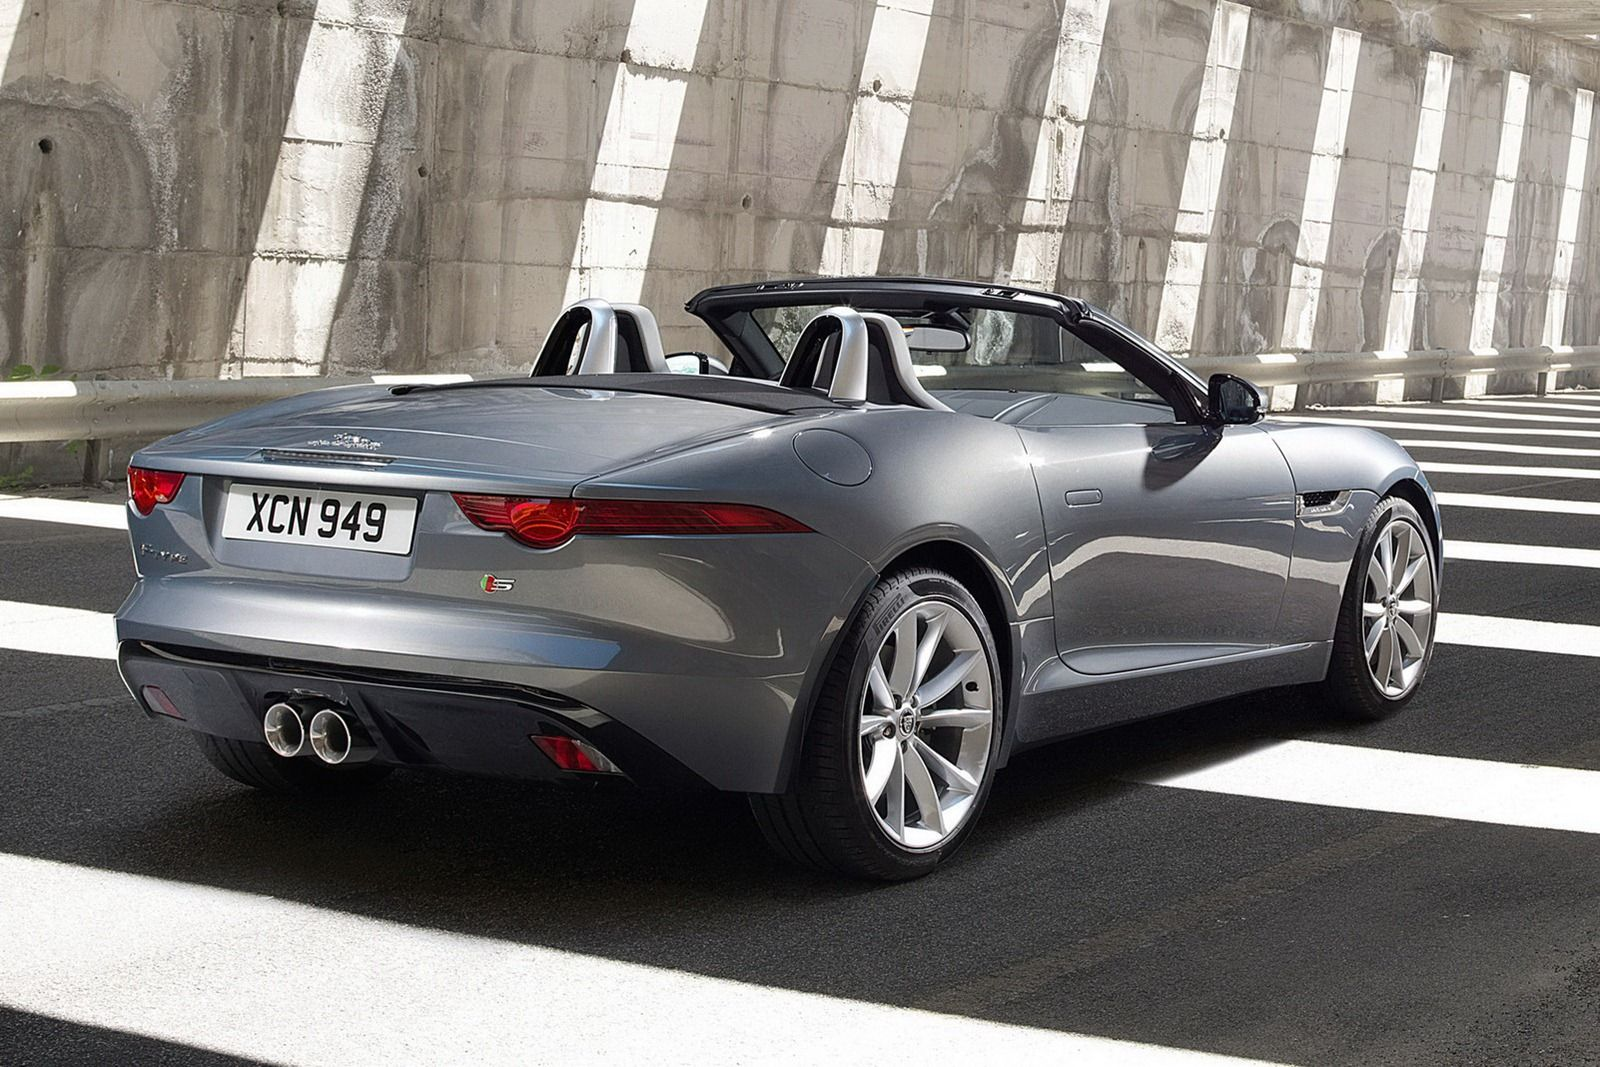 2013 Jaguar F Type Disclosed In New Photos Including The First Of The  Interior